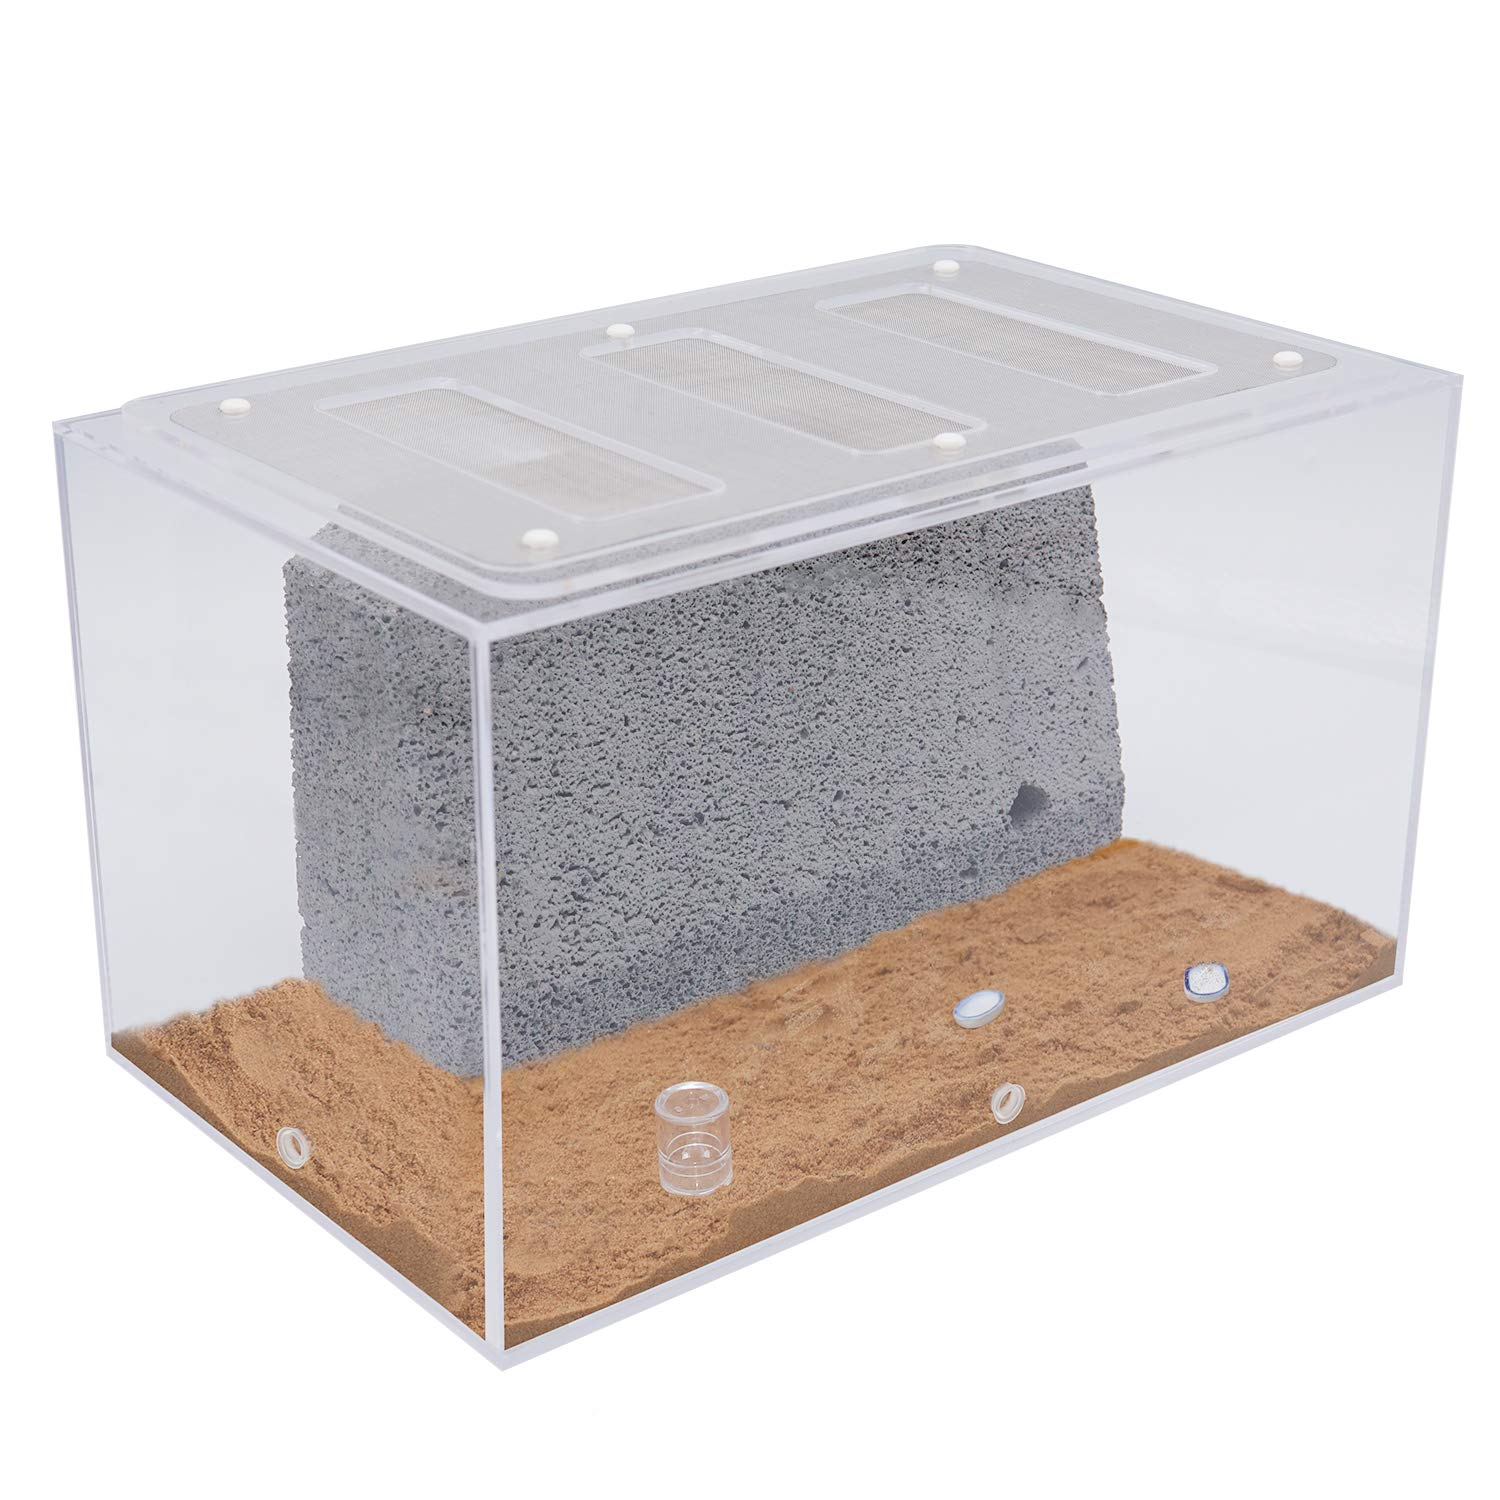 INNOLIFE Ant Castle Big Ants Farm with Ant Nest Rockery Formicarium(Model 2-Large) by INNOLIFE